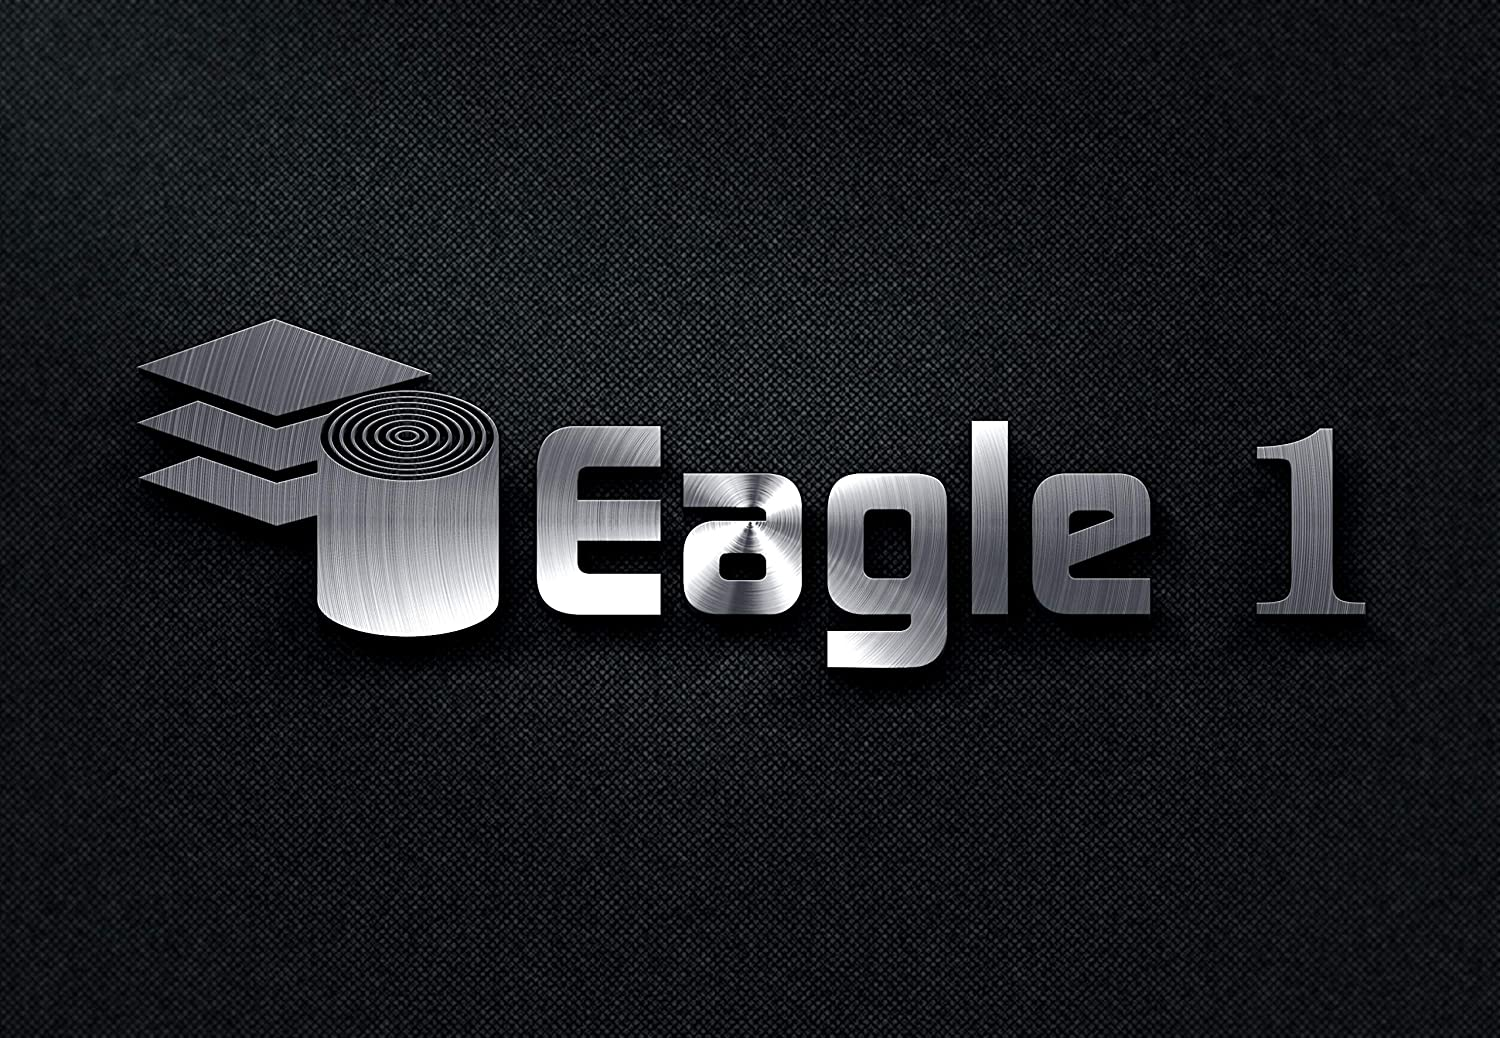 EAGLE 1: 26 Gauge General Use or Roofing Flashing Rolls Galvanized, 14x120 DIY or Contractors Ten FT in Length, Multiple Sizes in Listing /…